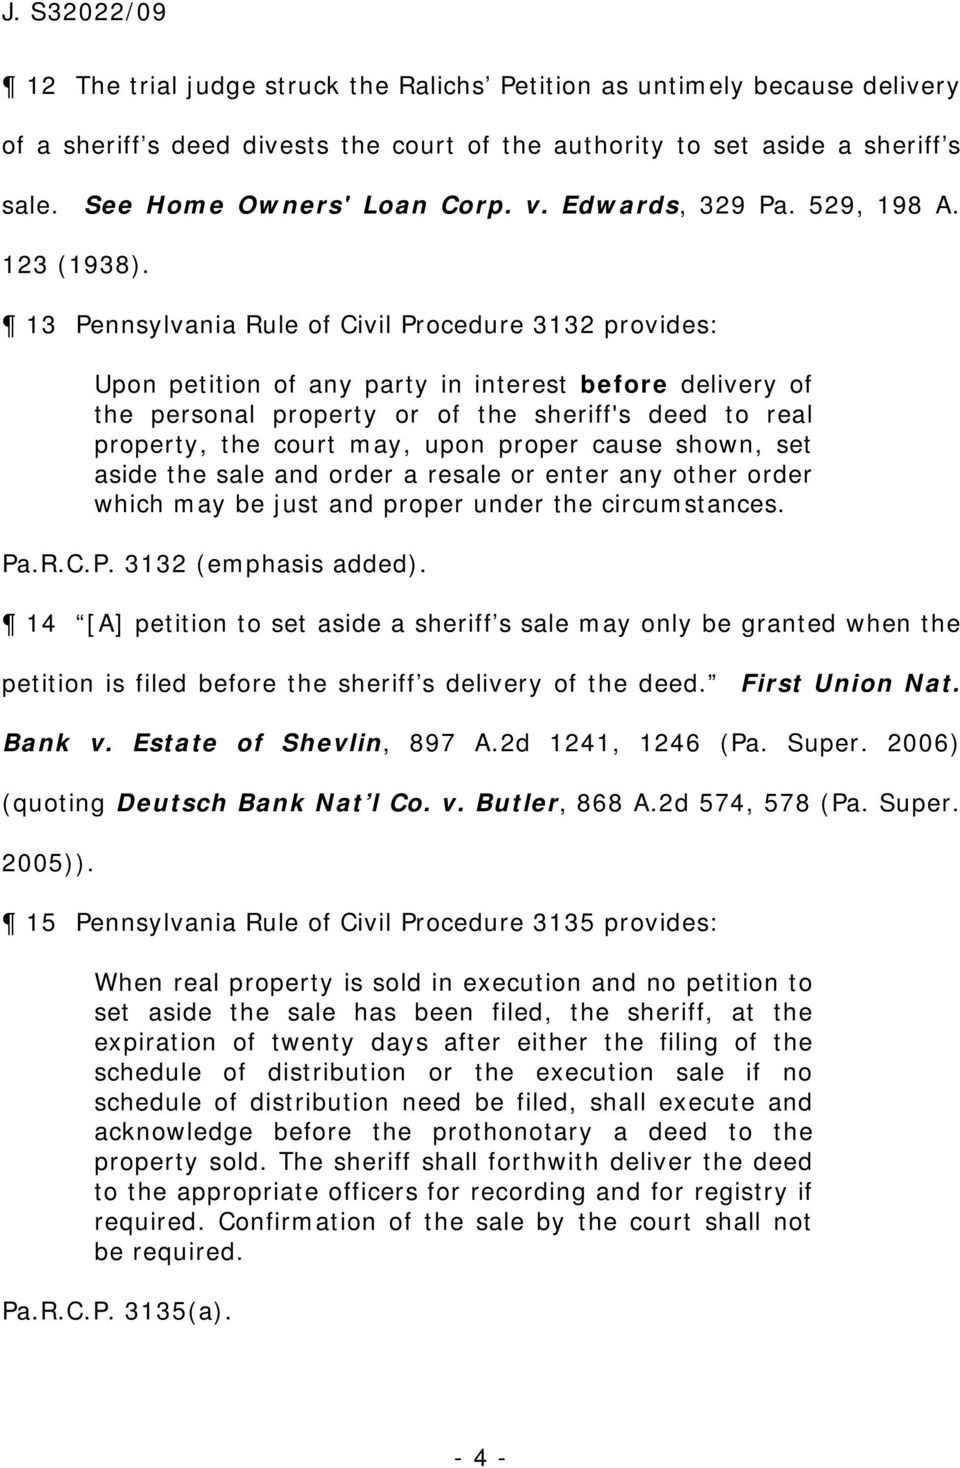 13 Pennsylvania Rule of Civil Procedure 3132 provides Upon petition of any party in interest before delivery of the personal property or of the sheriff's deed to real property, the court may, upon